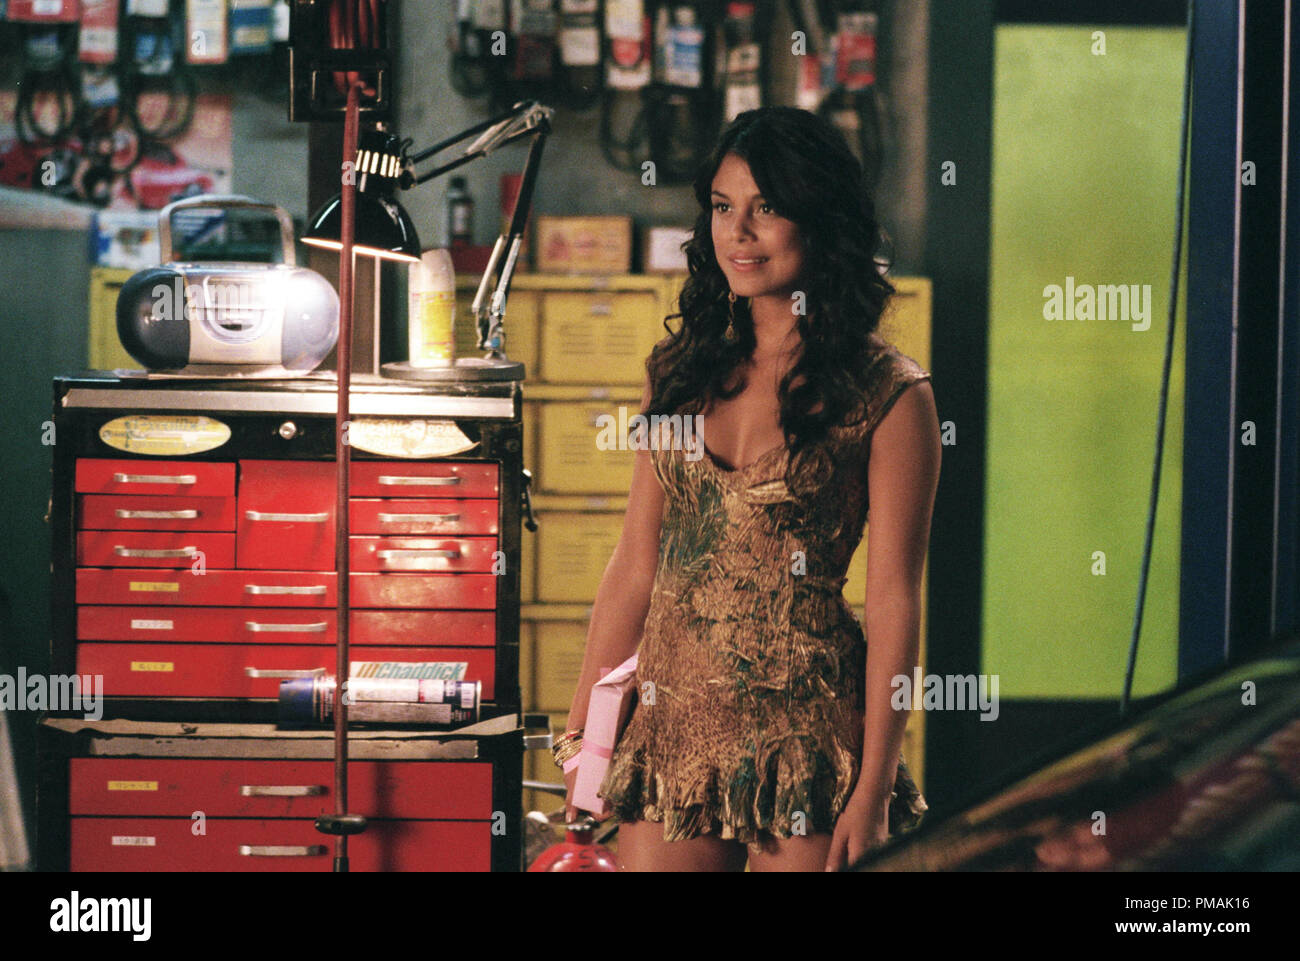 Nathalie Kelley  'The Fast and the Furious: Tokyo Drift' (2006) - Stock Image